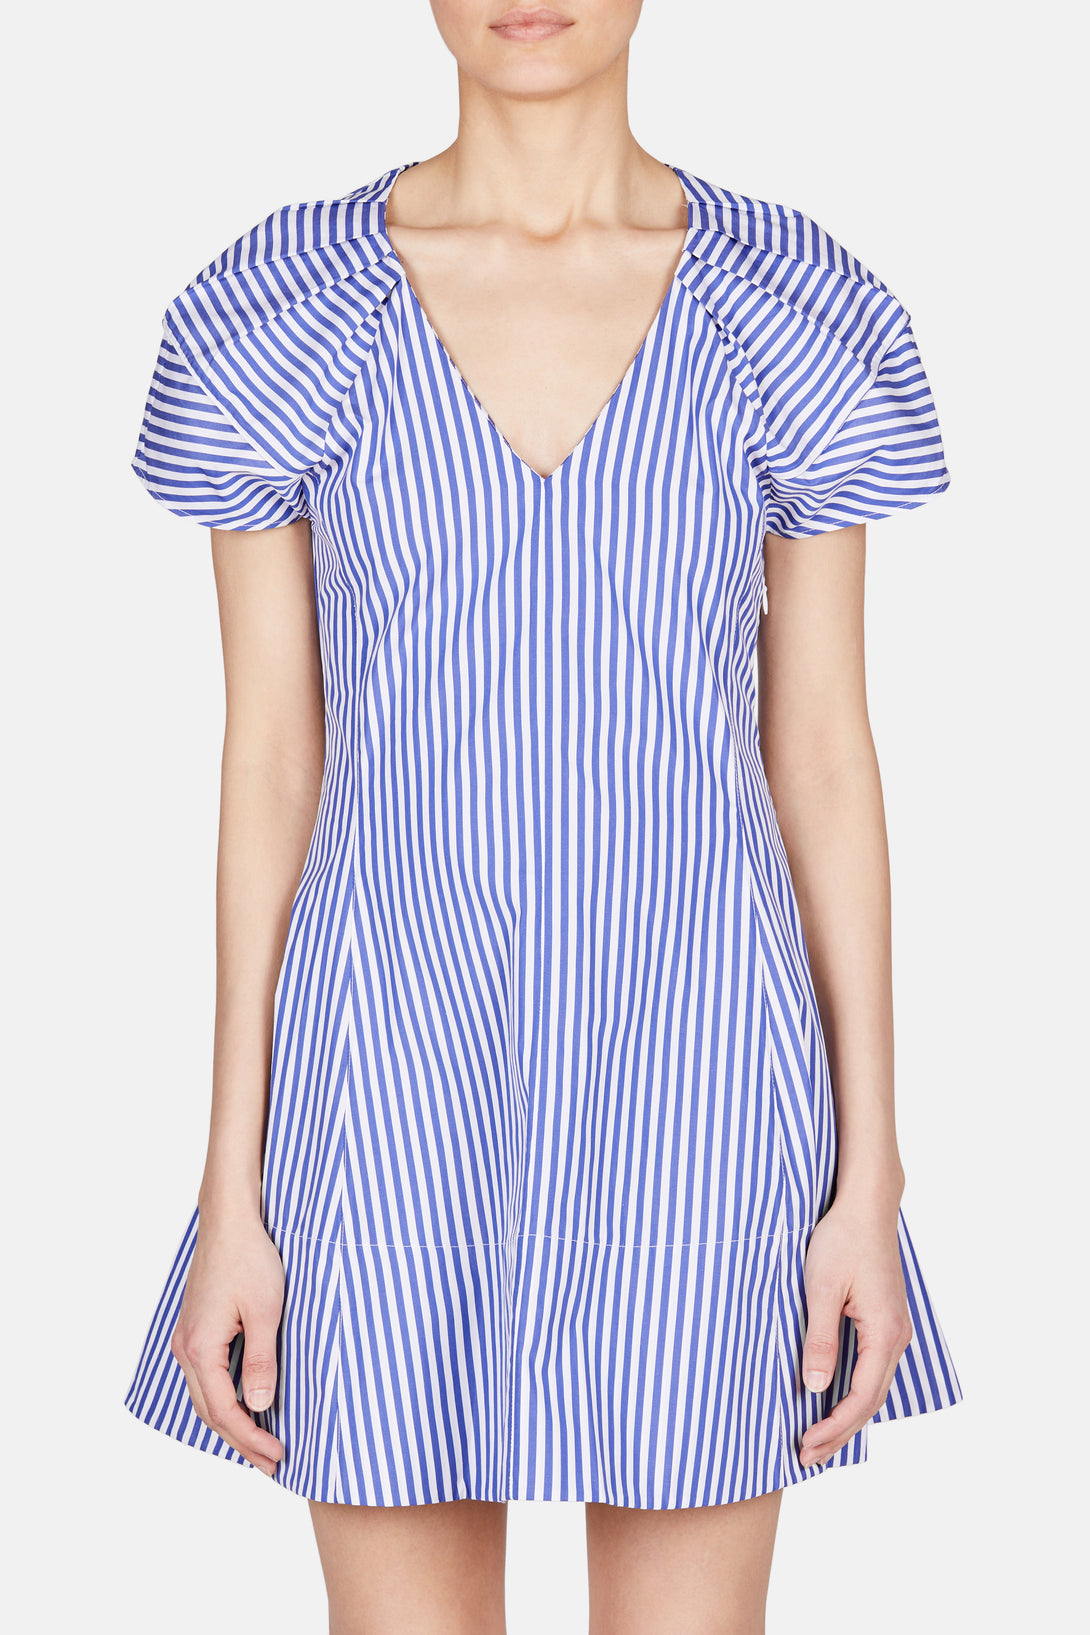 Briana Dress - Royal/White Stripe